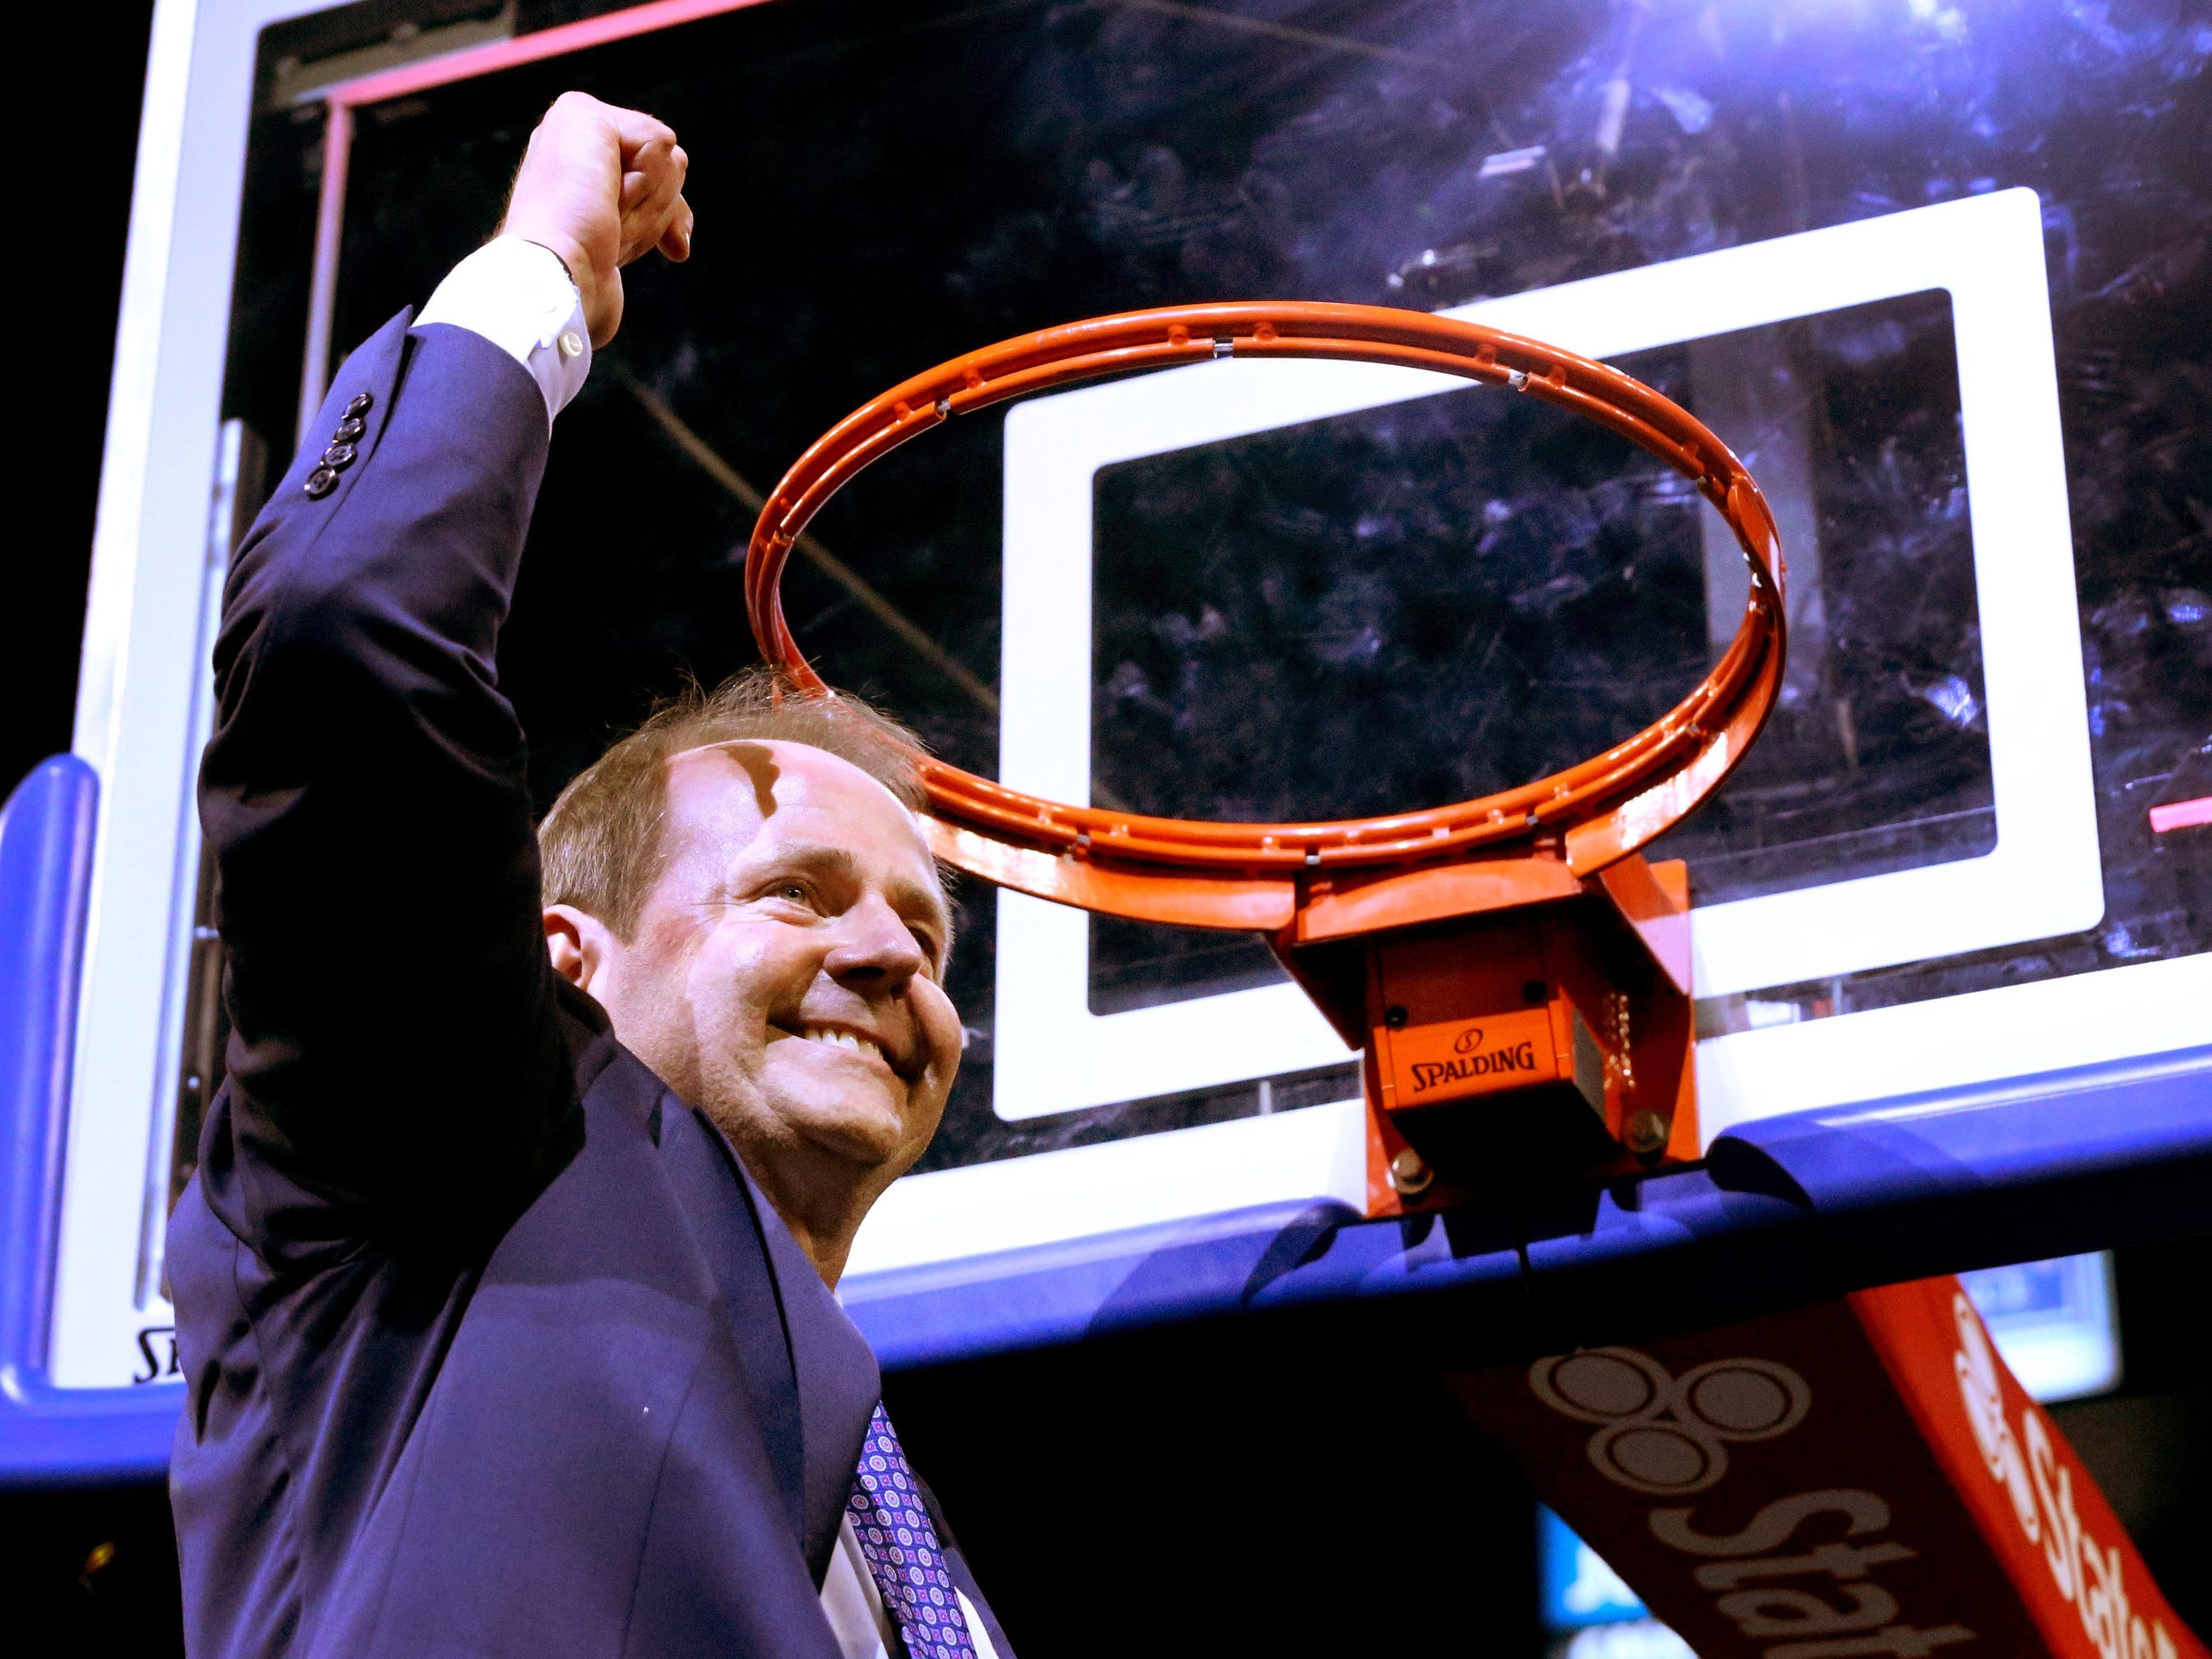 MTSU's head coach Kermit Davis celebrates winning the conference title 2 years in a row after cutting down the net and beating Western Kentucky 82-64 on Thursday, March. 1, 2018, at MTSU.